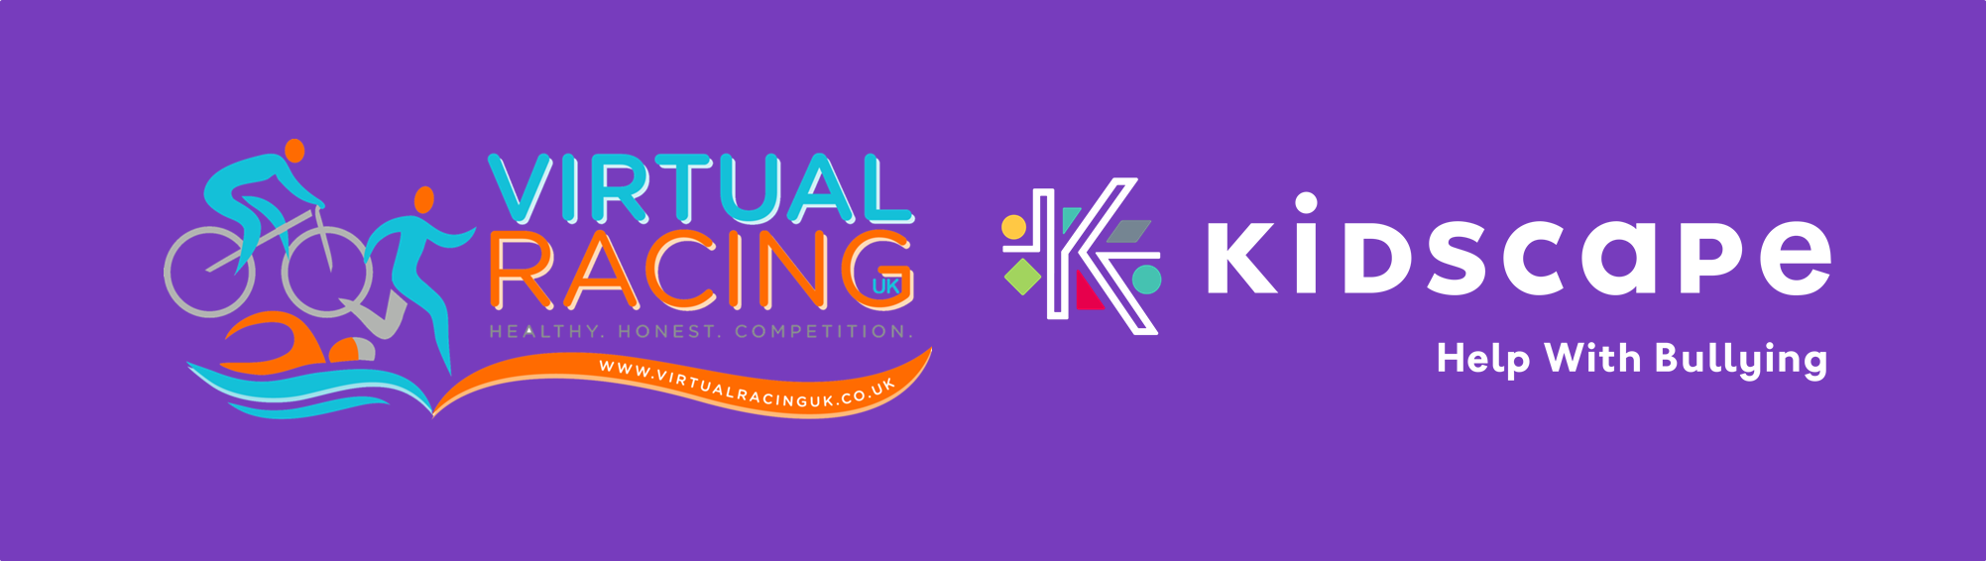 Virtual Racing Uk And Kidscape